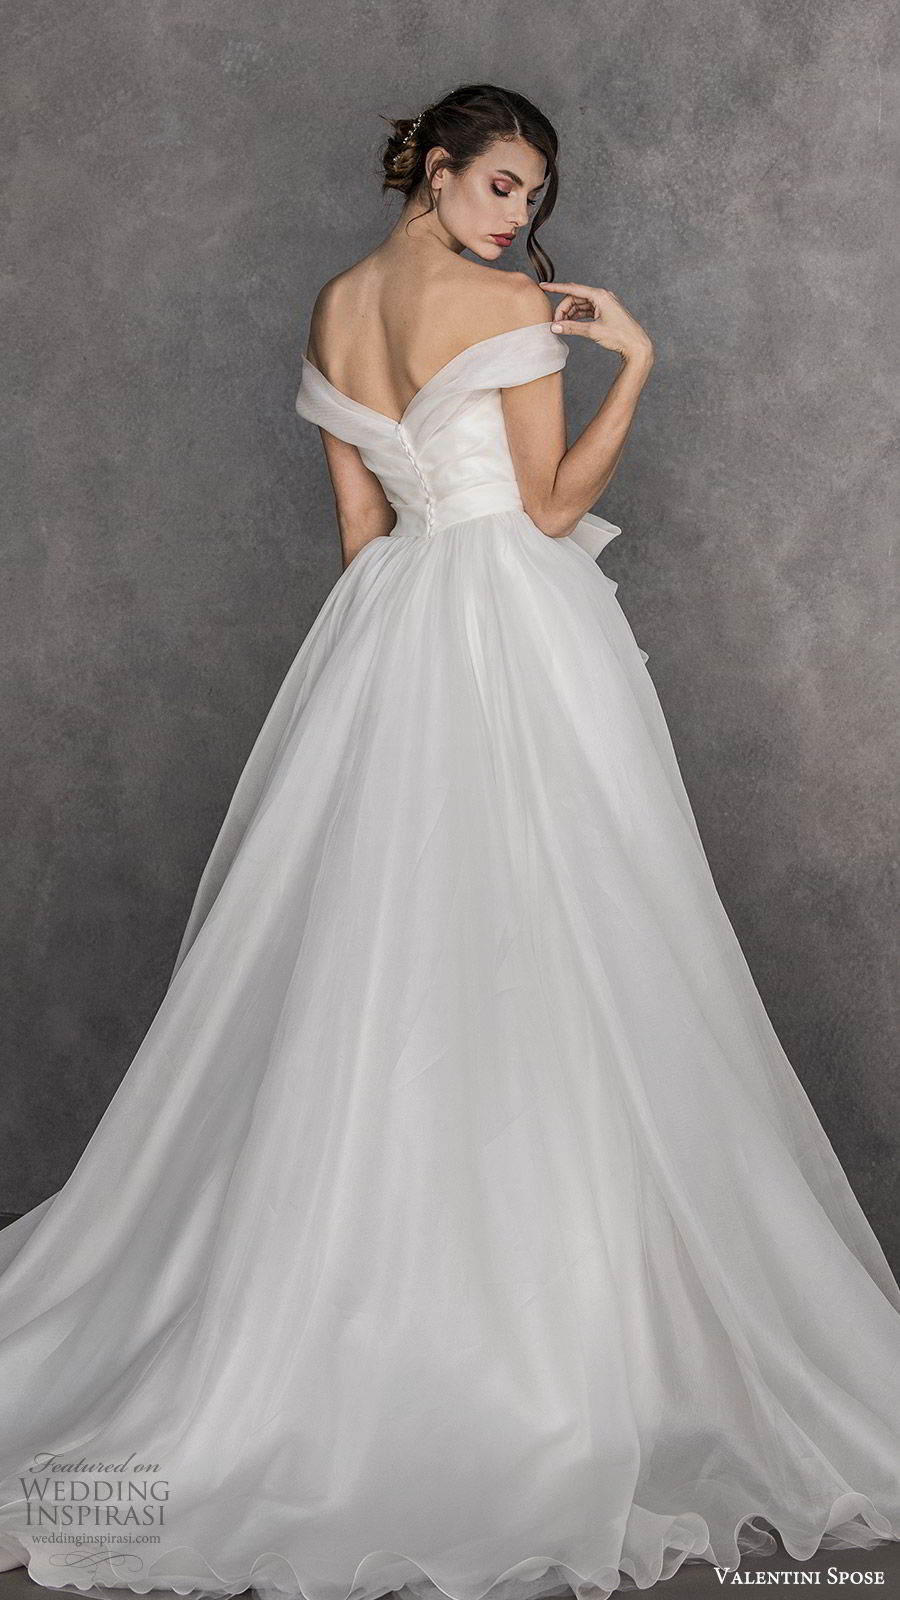 valentini spose spring 2020 bridal off shoulder a line ball gown wedding dress (3) bow waist chapel train ivory romantic princess bv